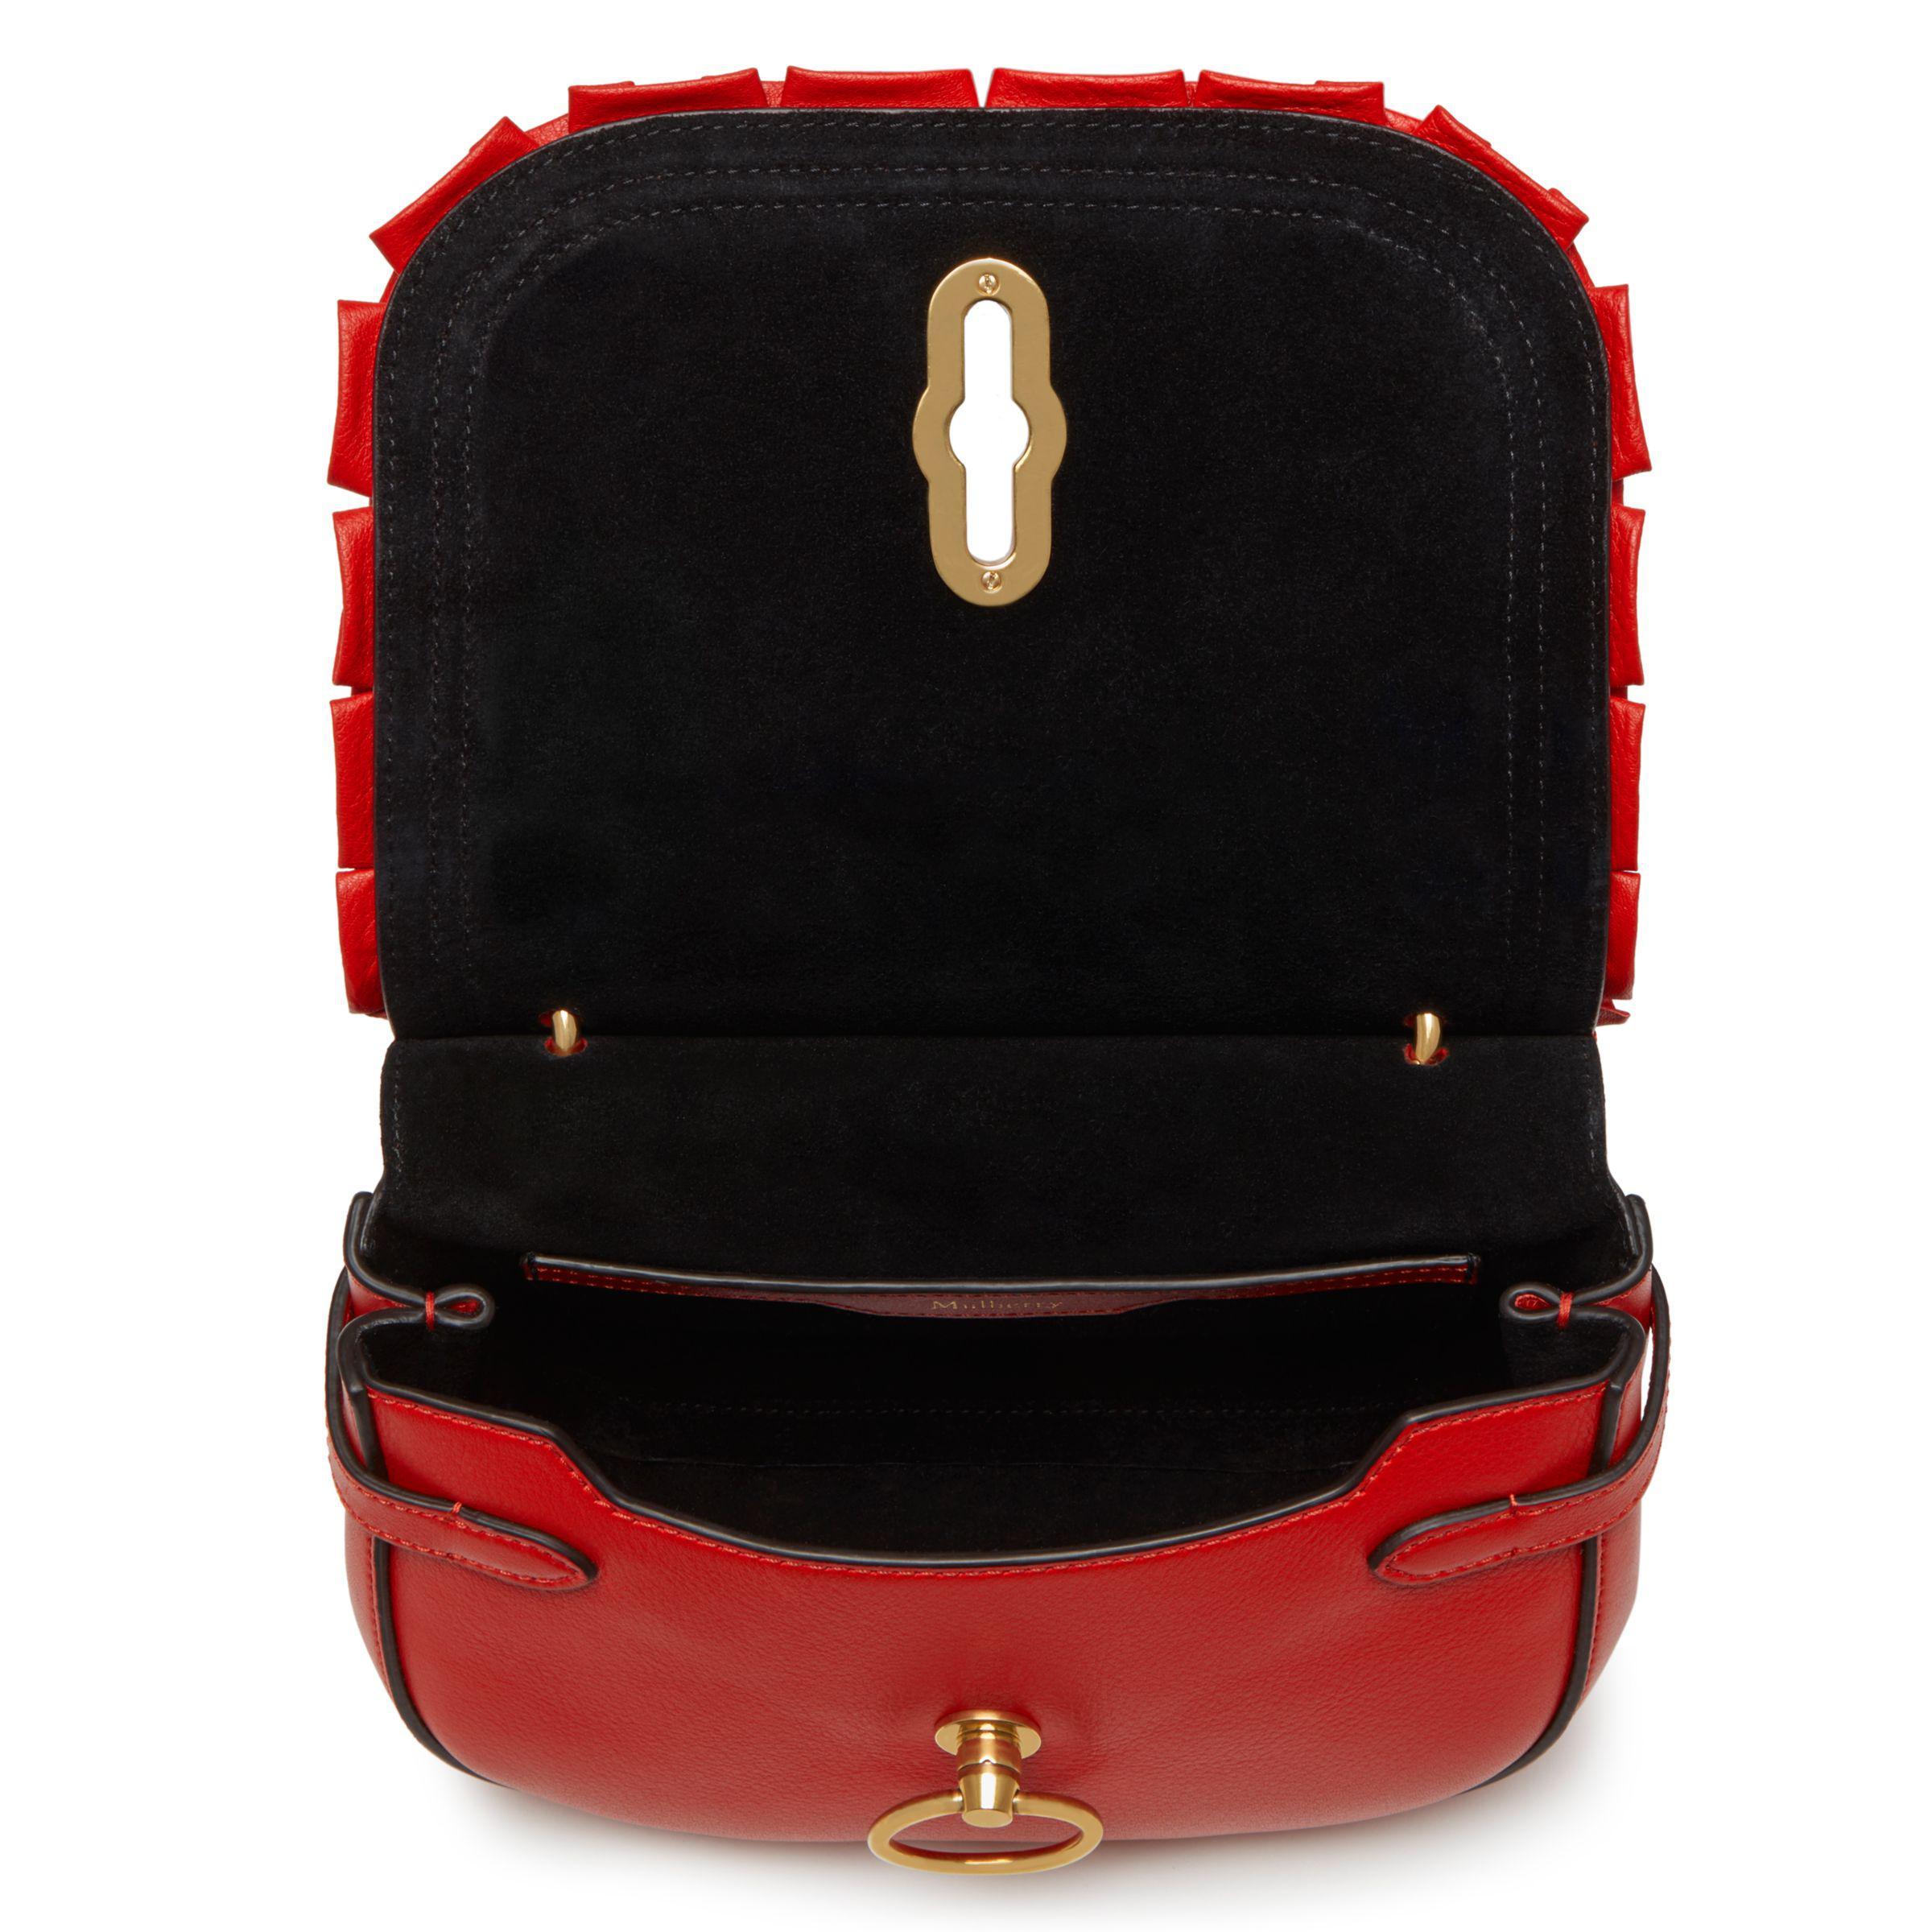 ... discount code for john lewis mulberry amberley leather small frill edge  satchel in red e8932 a95ea 5beeb4c3c19cb